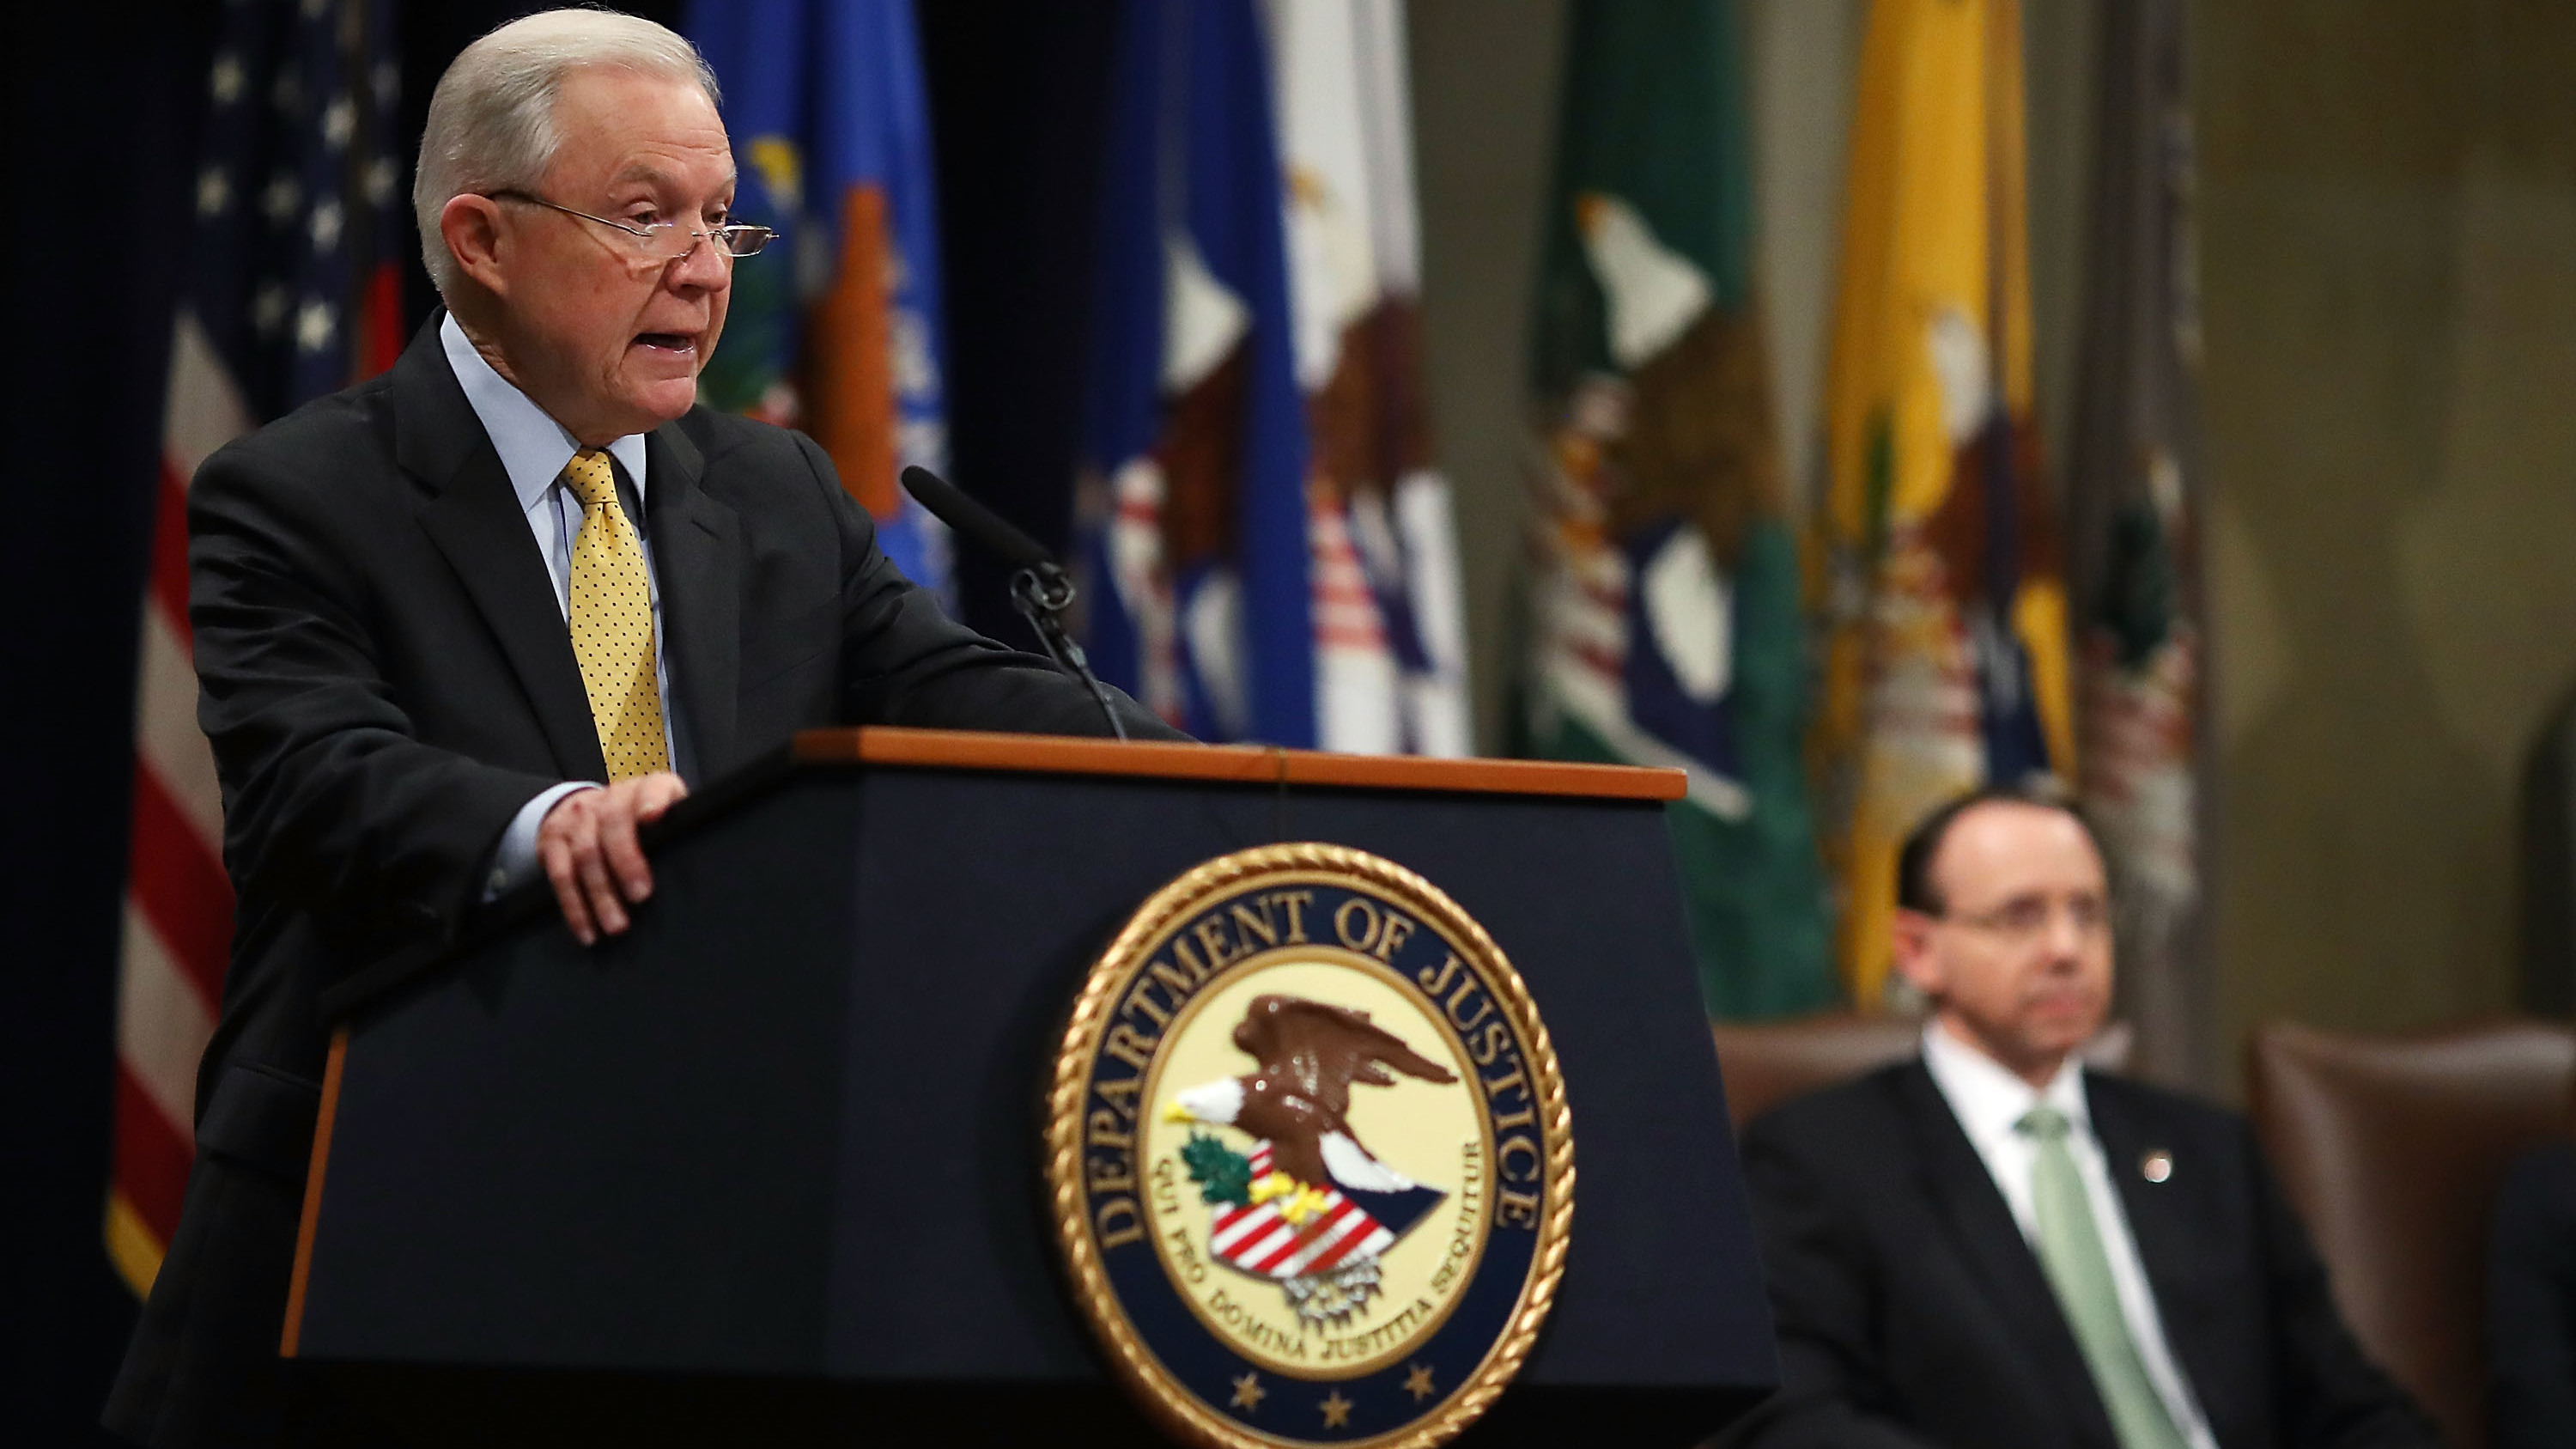 Attorney General Jeff Sessions (left) speaks while Deputy Attorney General Rod Rosenstein listens during a summit at the Justice Department on Feb. 2 in Washington, D.C., to discuss efforts to combat human trafficking.